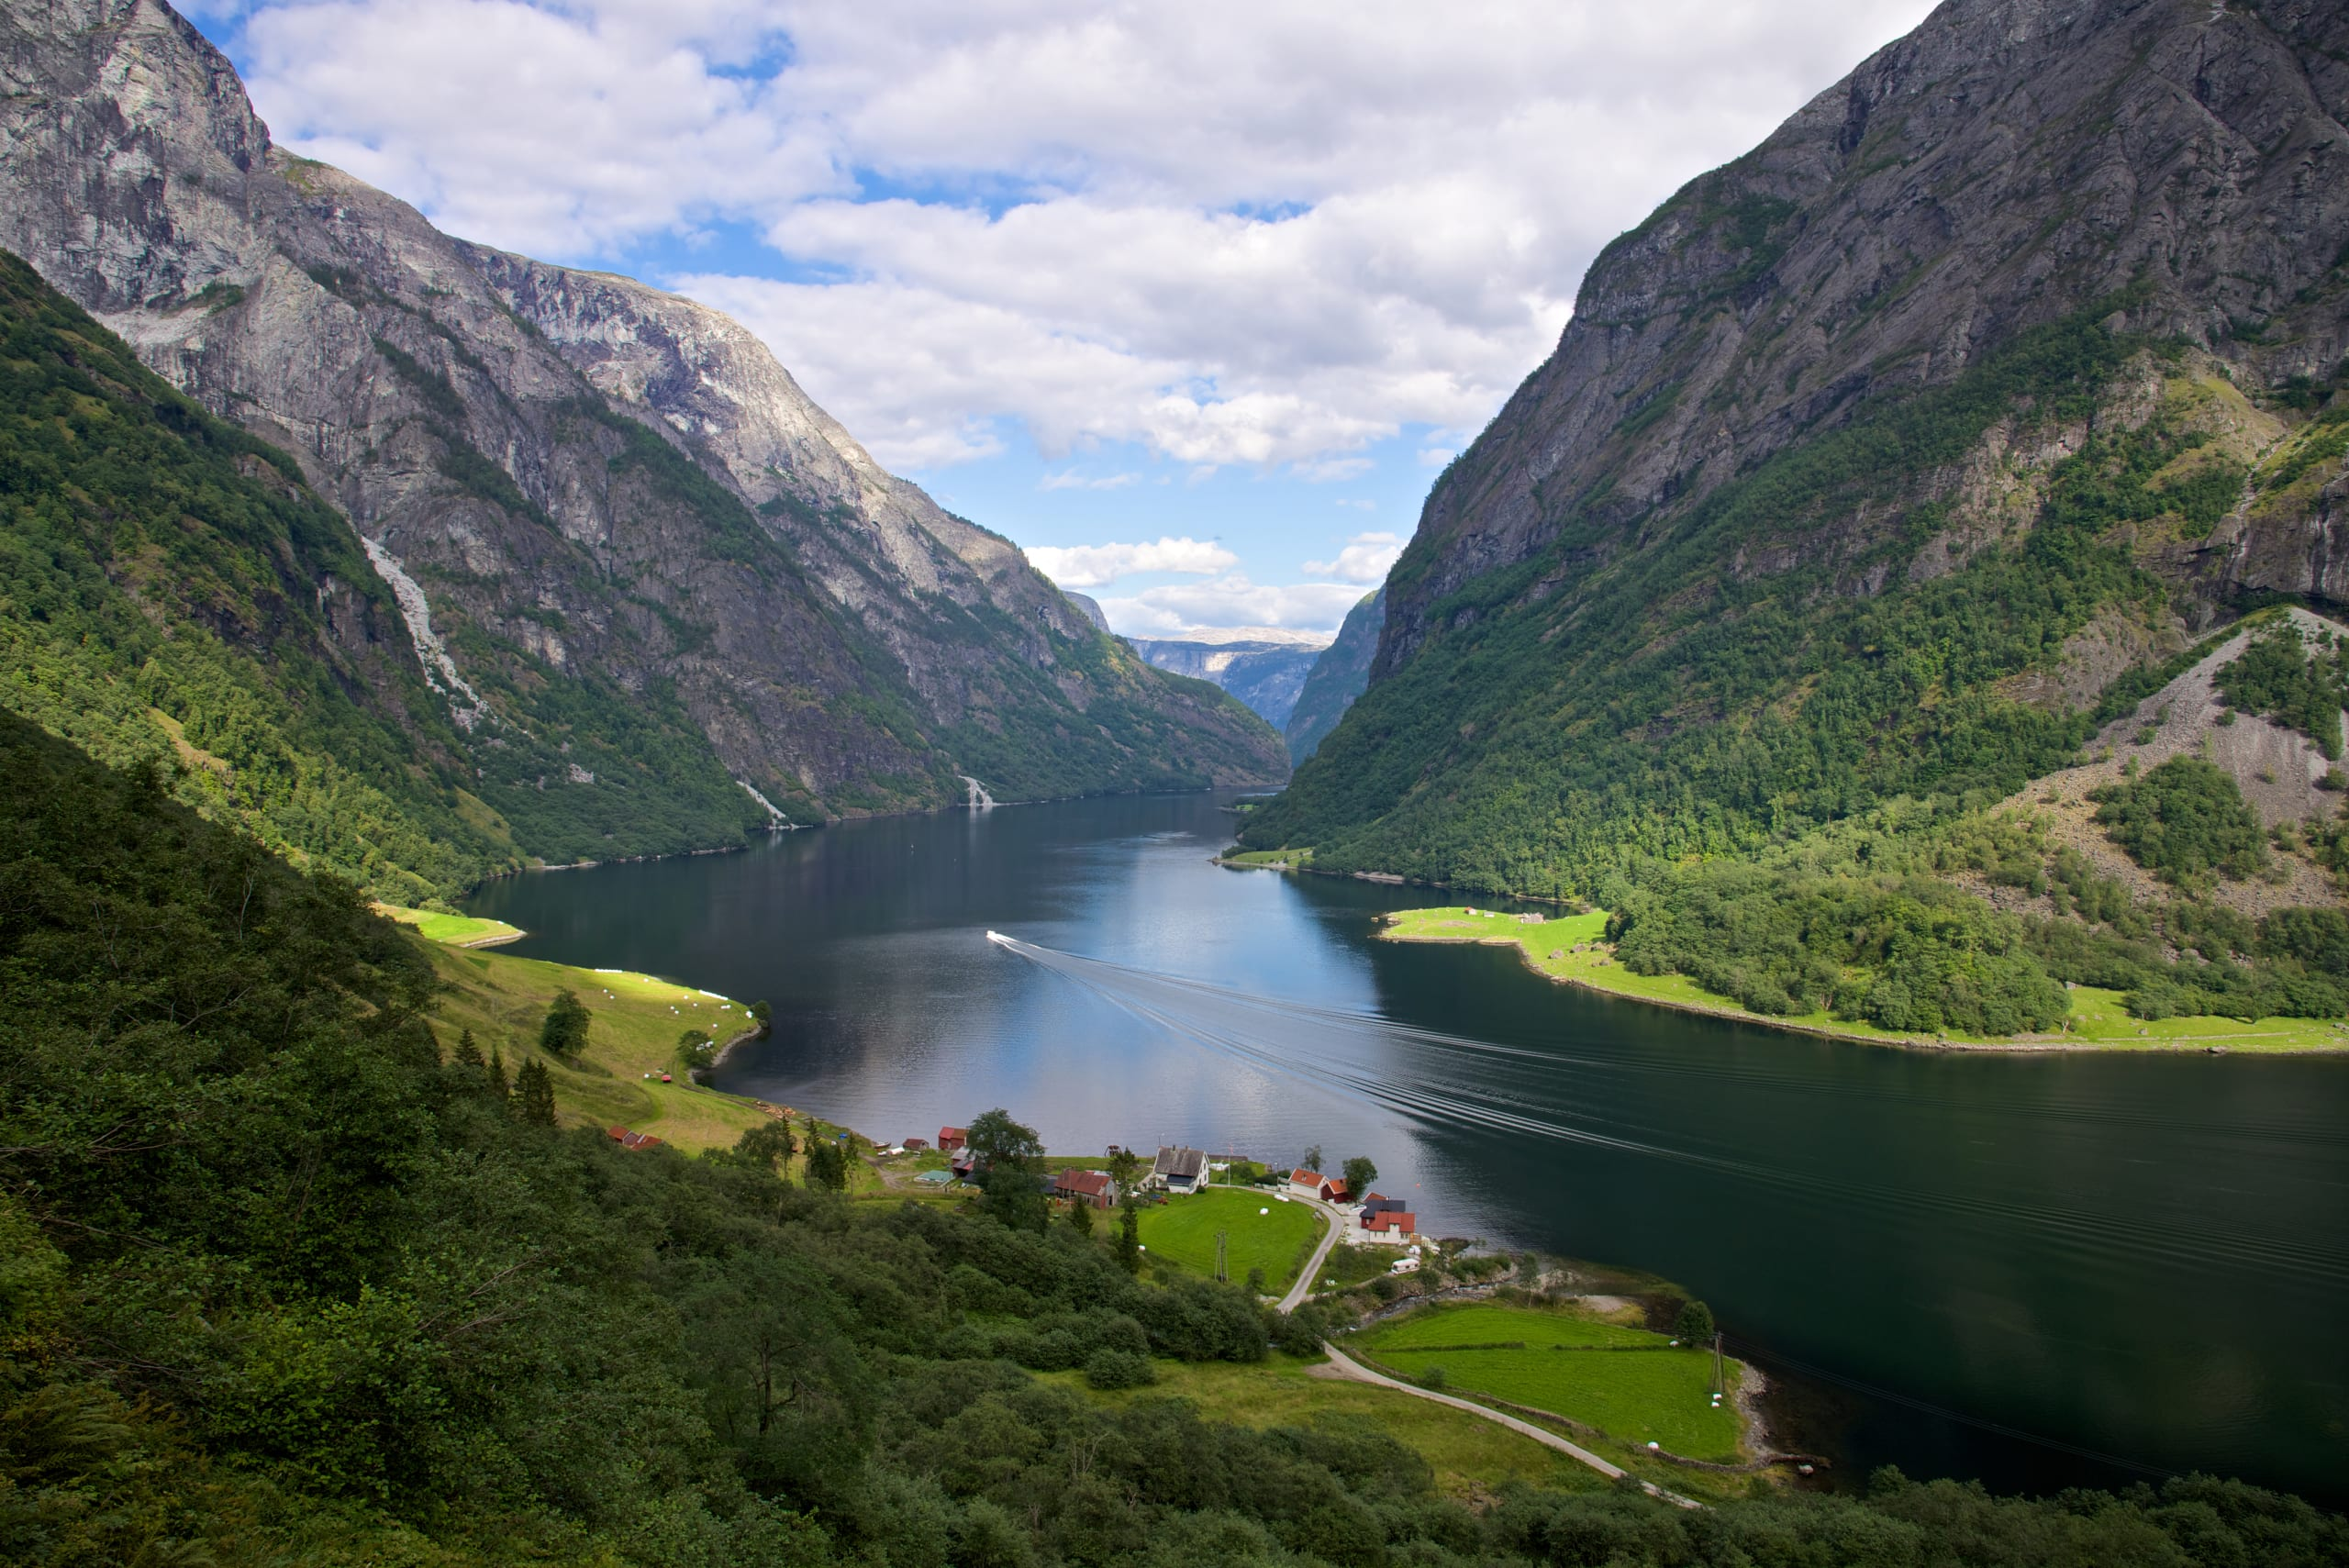 The stunningly narrow Nærøyfjord